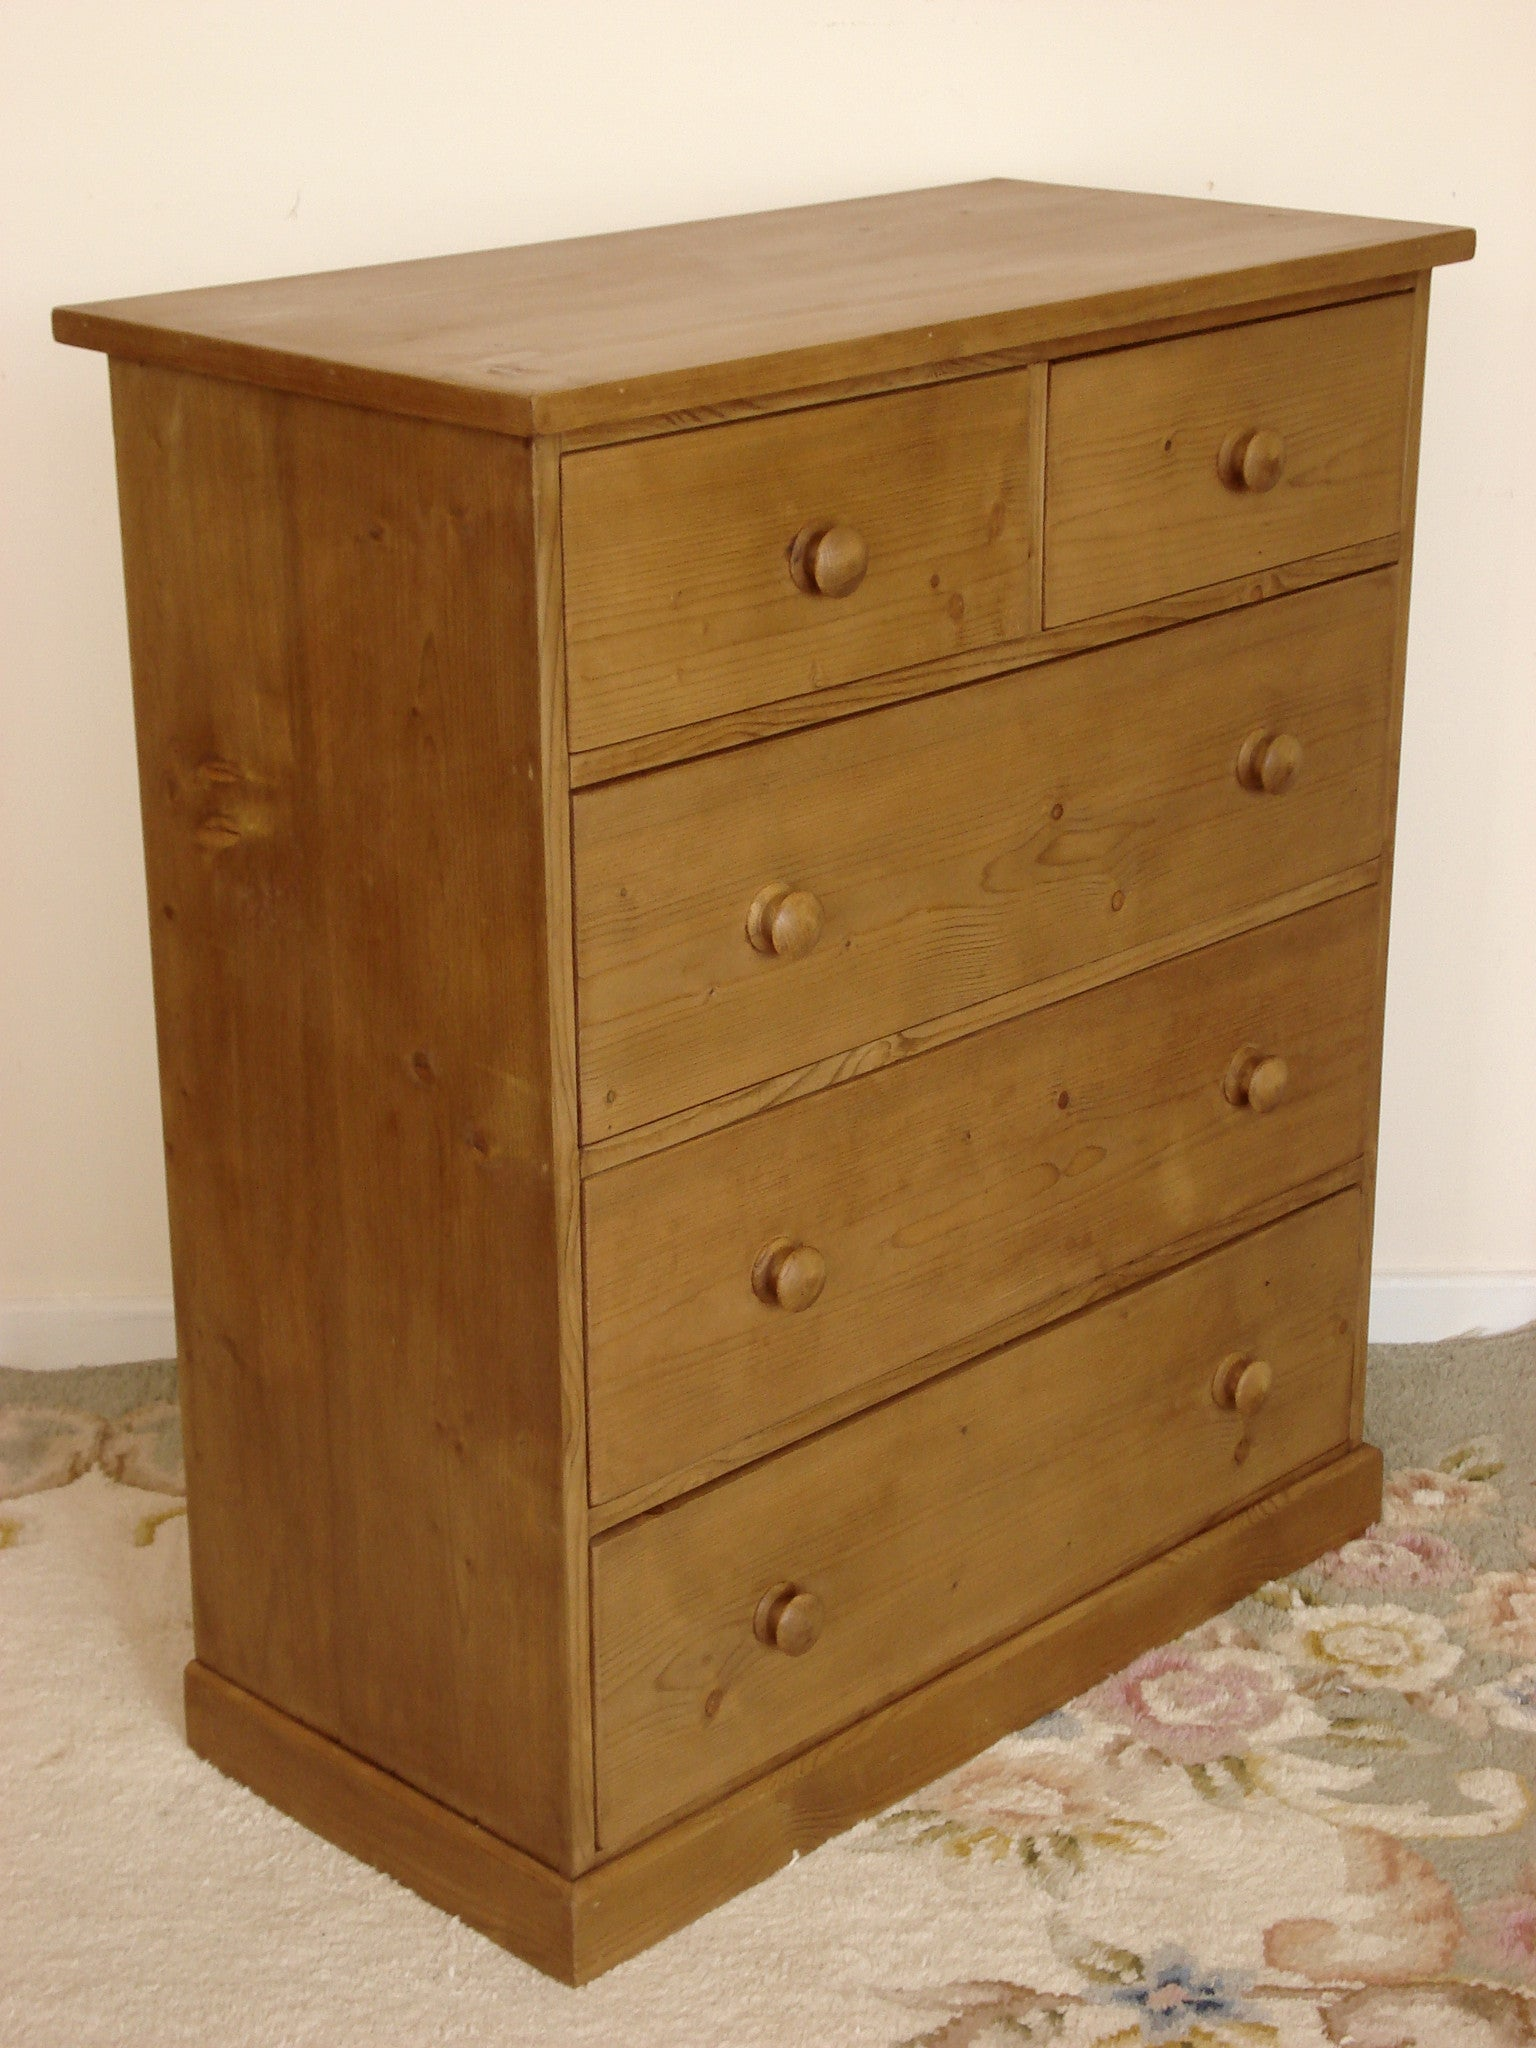 Honey Pine Chest of Drawers